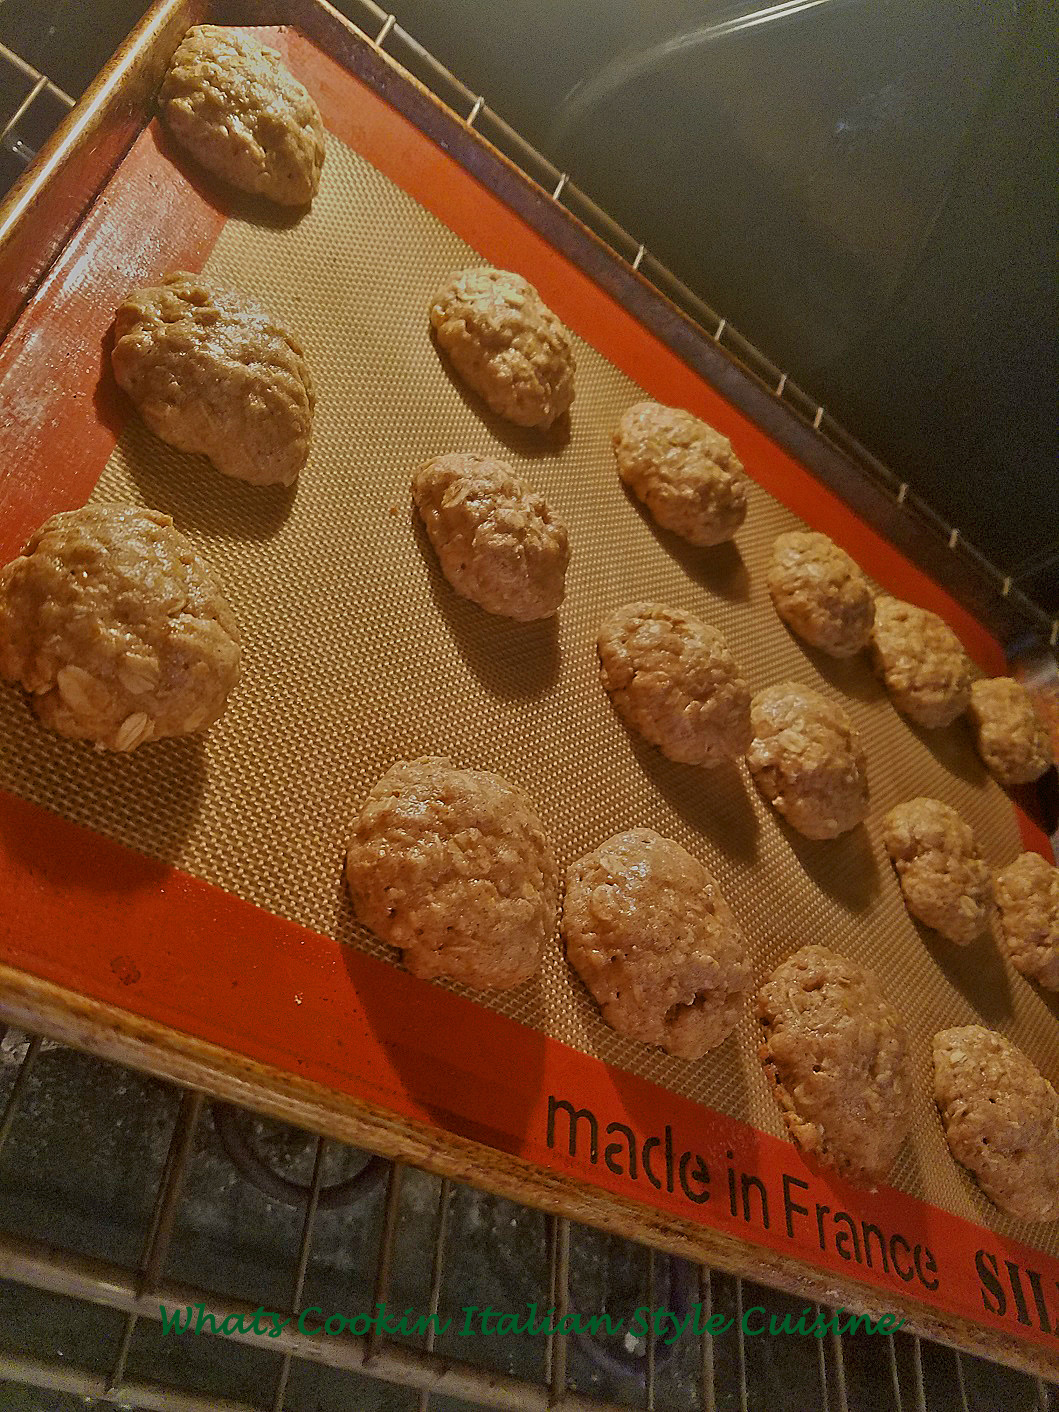 Old fashioned oatmeal cookies baked and cooling on a silpat mat cookie sheet